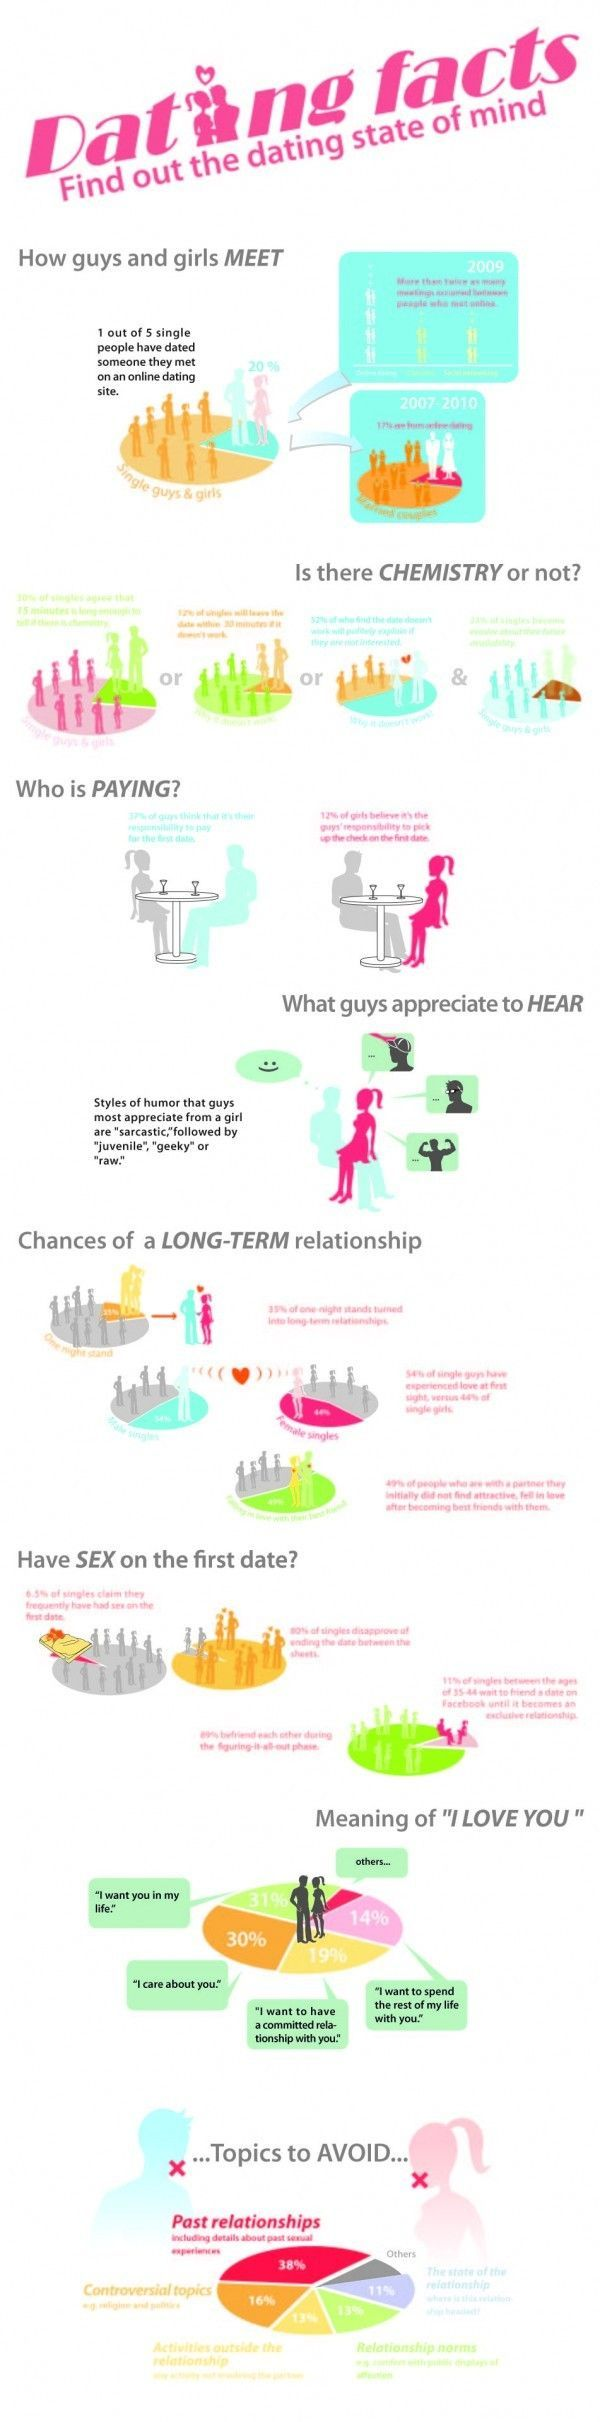 how-has-the-emergence-of-online-dating-changed-the-dynamics-of-relationships-internal-view-sex